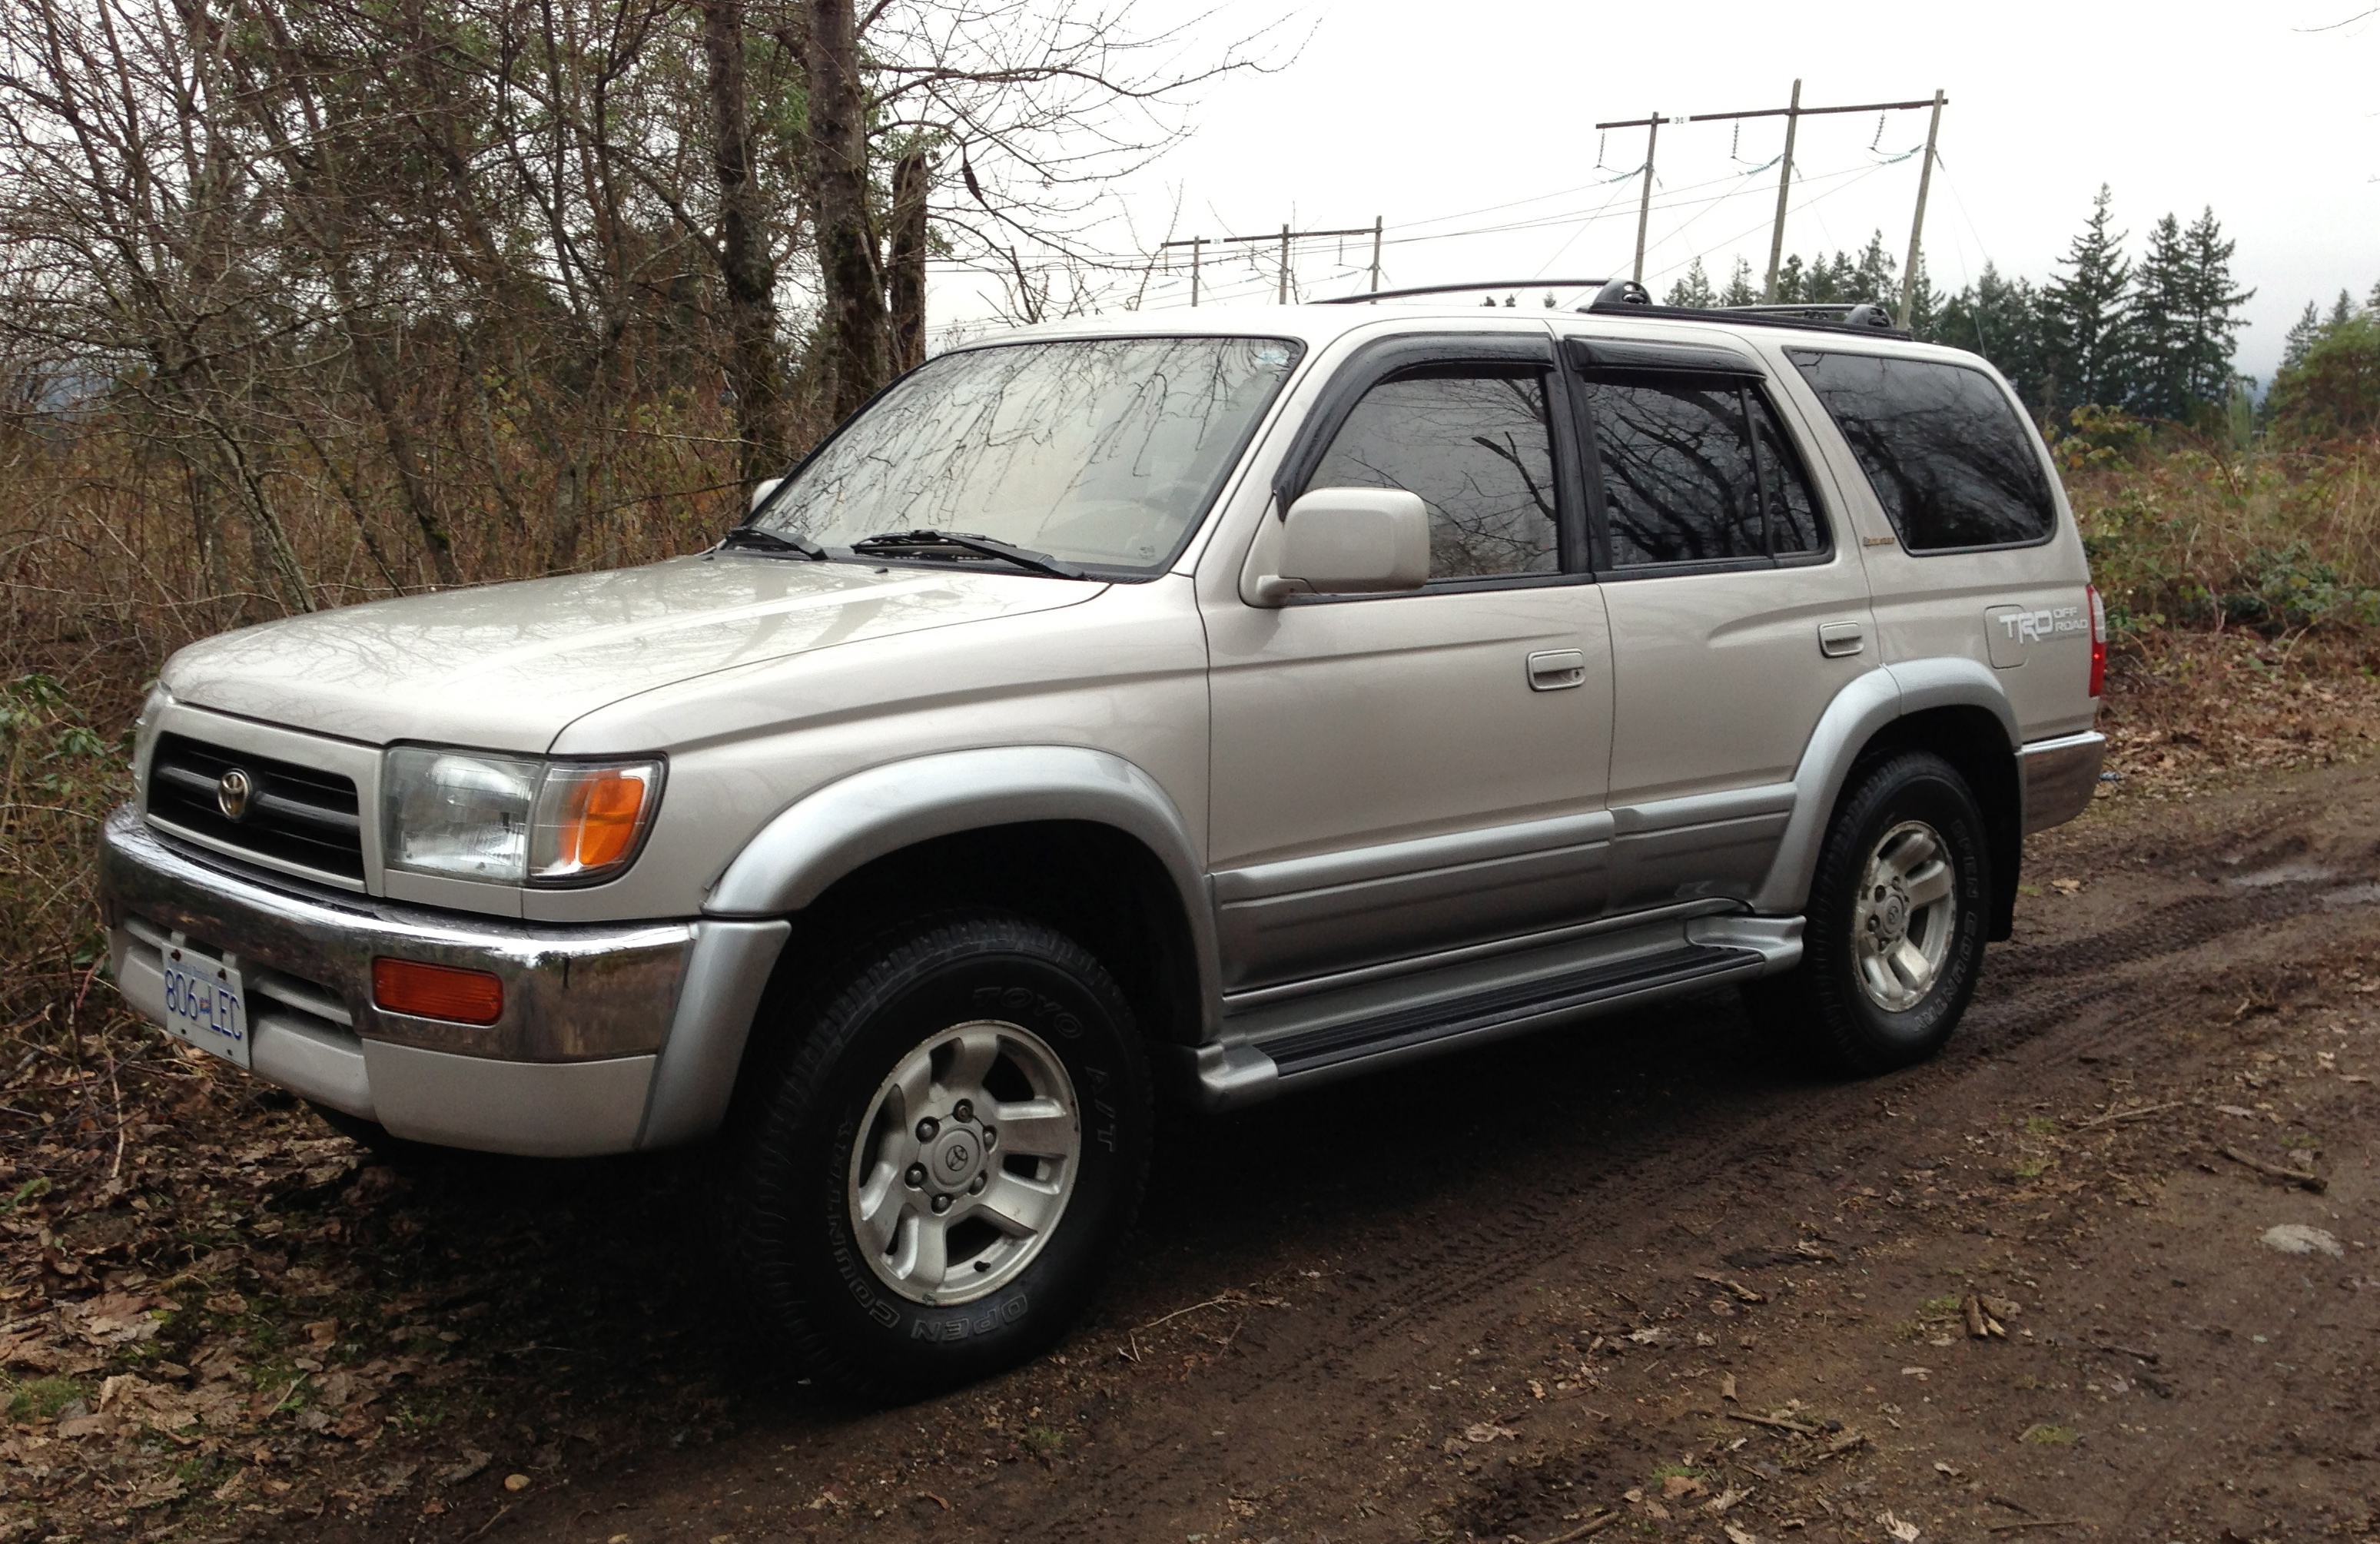 1998 toyota 4runner limited new price vancouver island off road. Black Bedroom Furniture Sets. Home Design Ideas